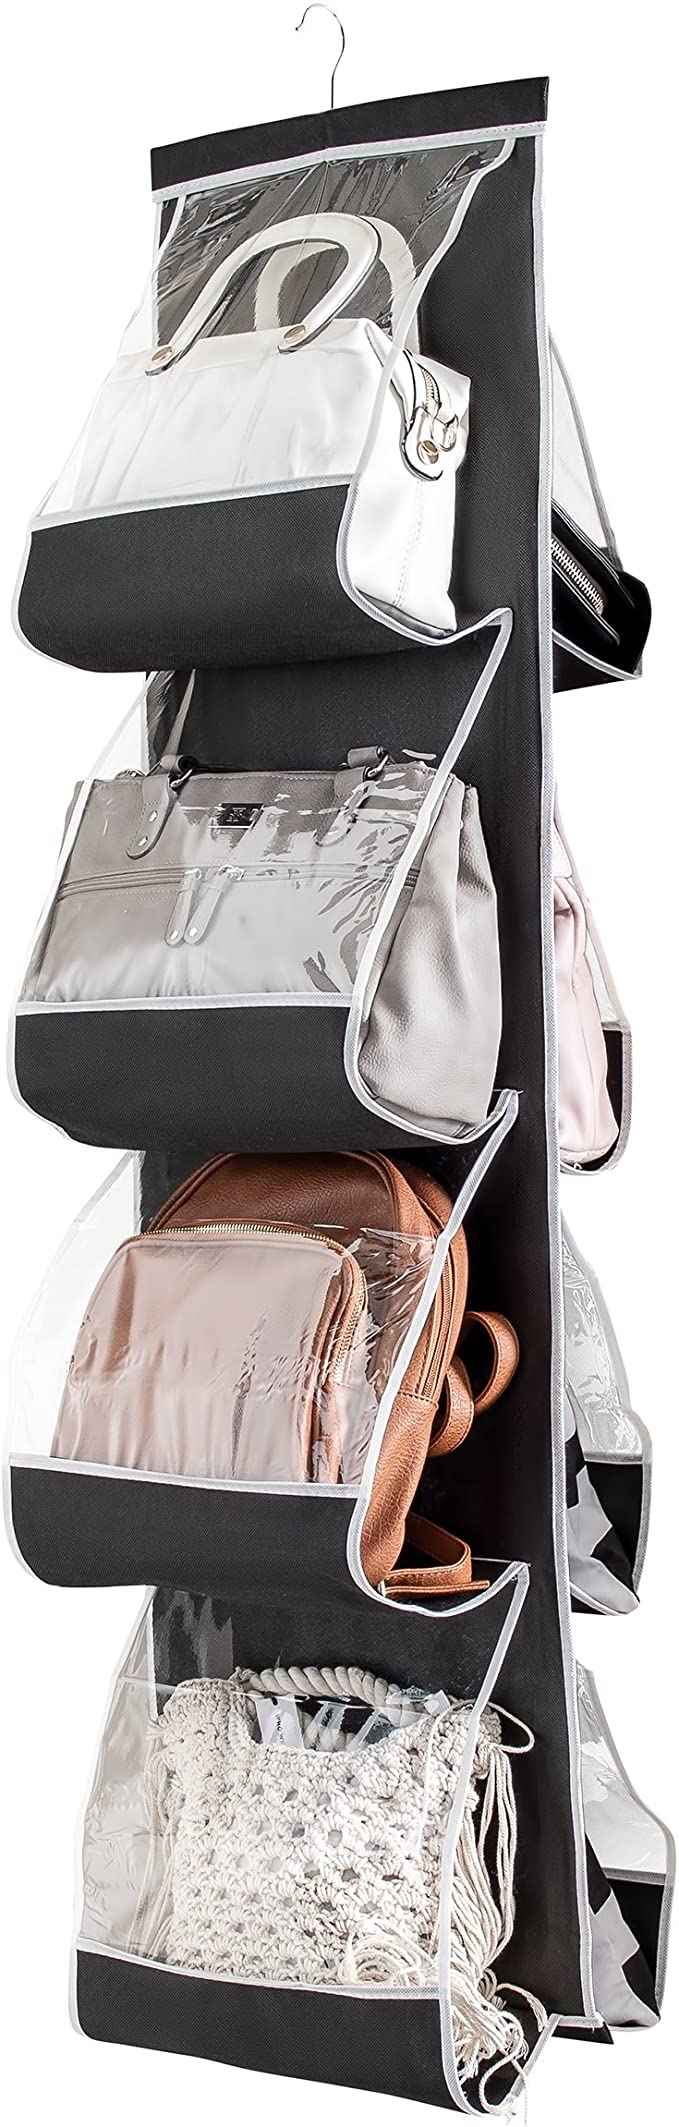 """ZOBER Hanging Purse Organizer for Closet Clear Handbag Organizer for Purses, Handbags Etc. 8 Easy Access Clear Vinyl Pockets with 360 Degree Swivel Hook, Gray, 48"""" L x 13.8"""" W (Black): Amazon.ca: Home & Kitchen"""